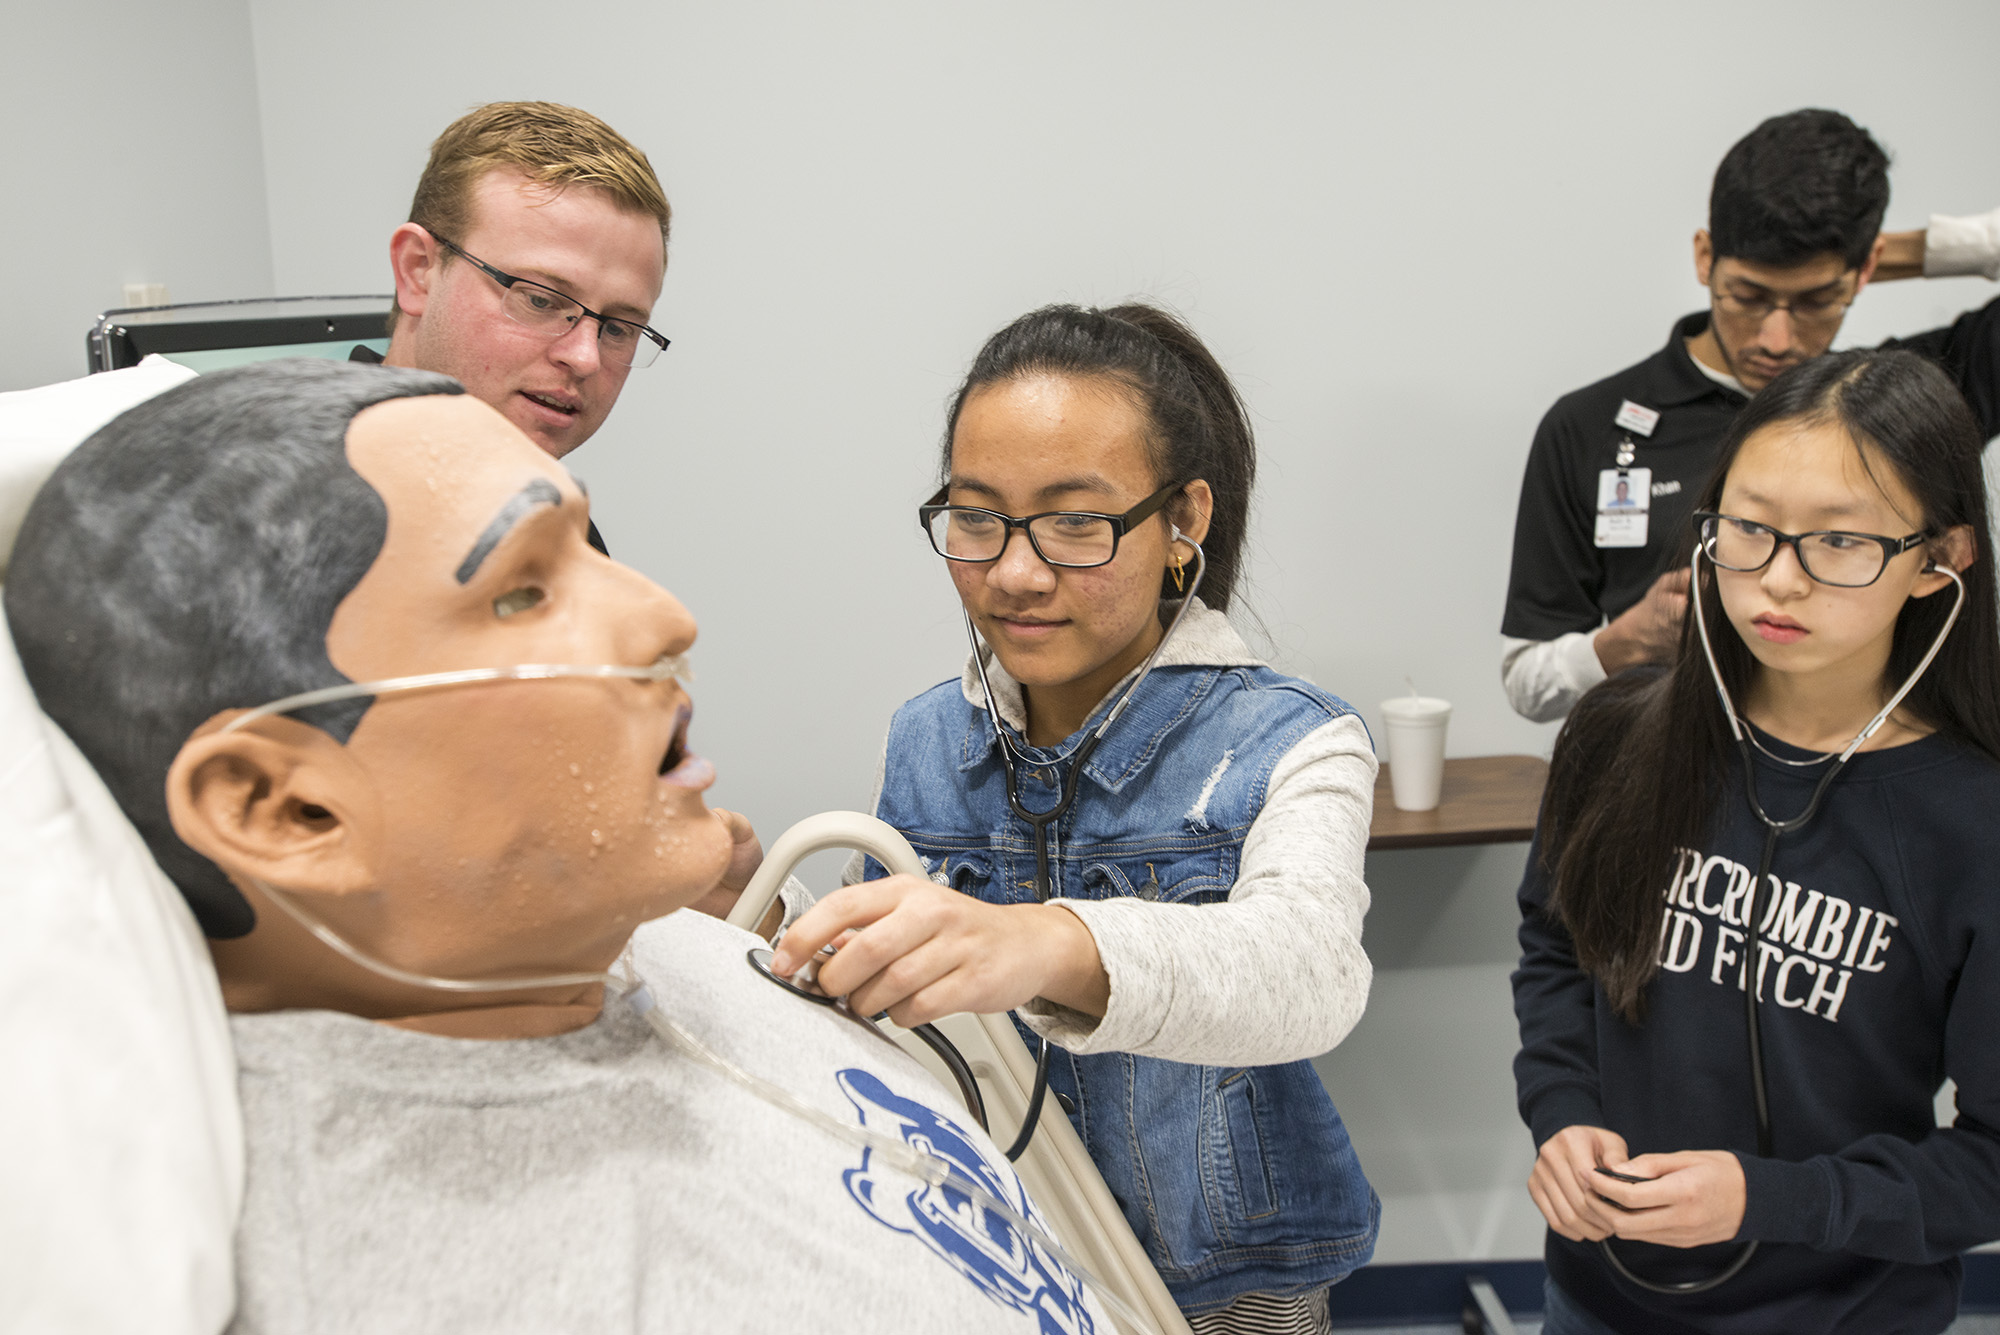 Lakeview Middle School student Van Tling checks the heartbeat of a patient simulator at Kellogg Community College while classmate Sarah Cha and Western Michigan University Homer Stryker M.D. School of Medicine student Zackary Cowan observe.